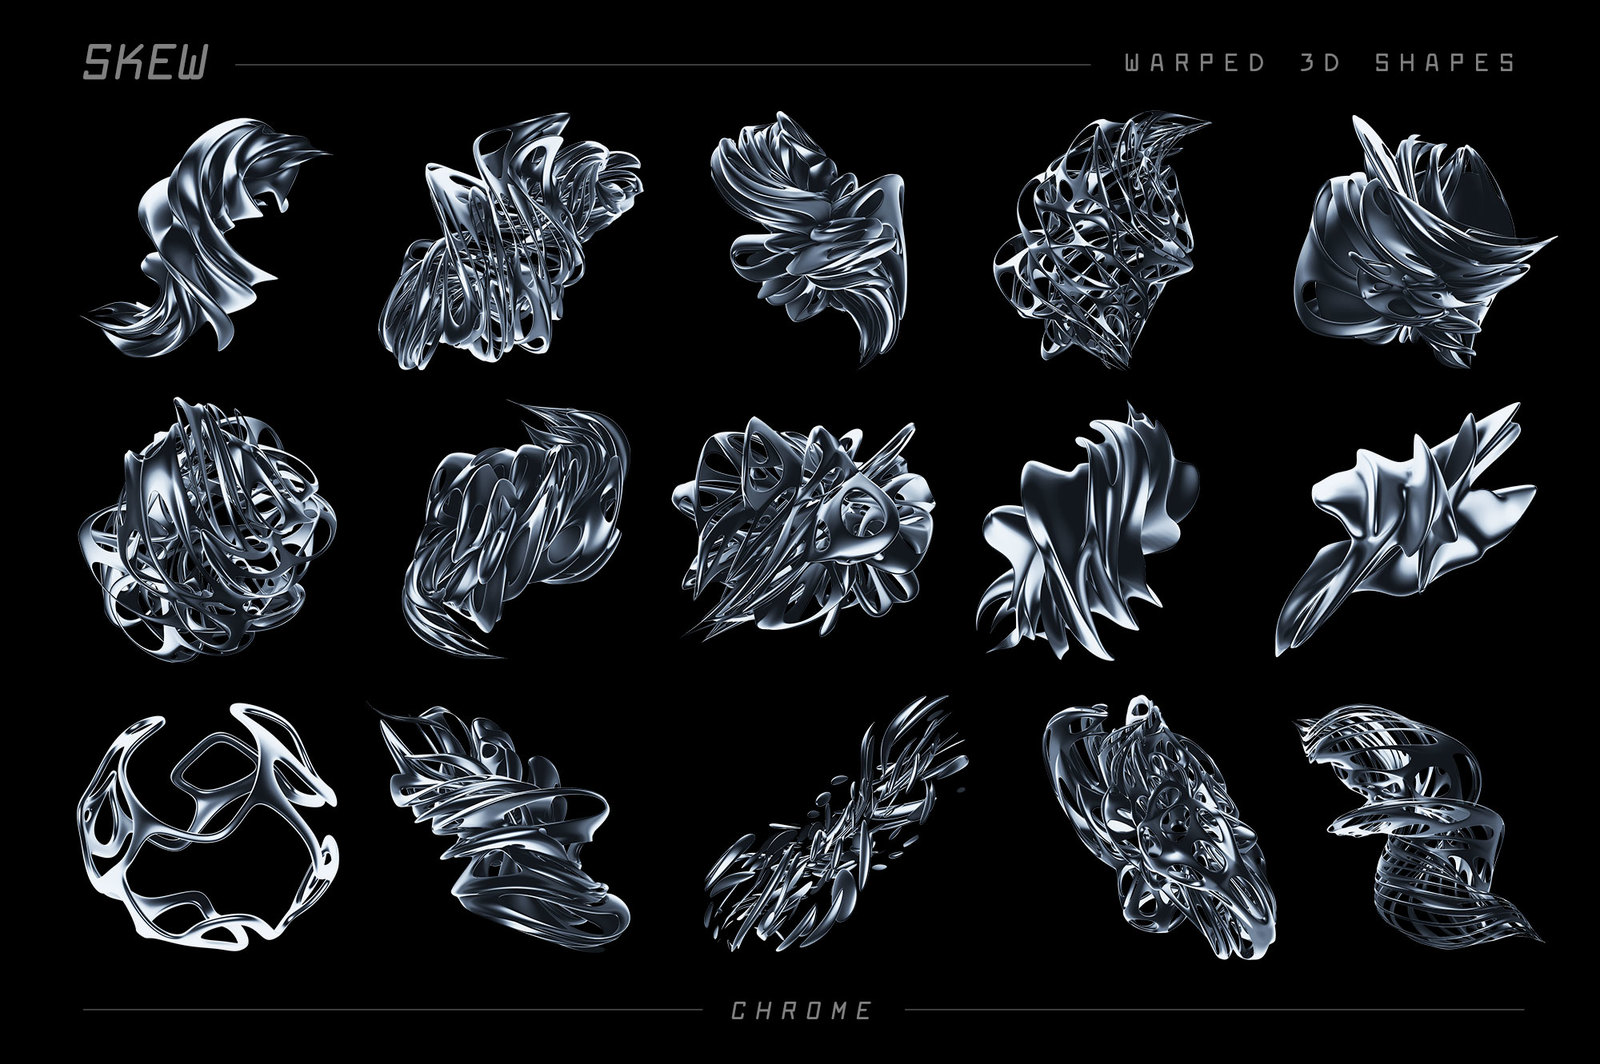 Skew: Warped 3D Shapes